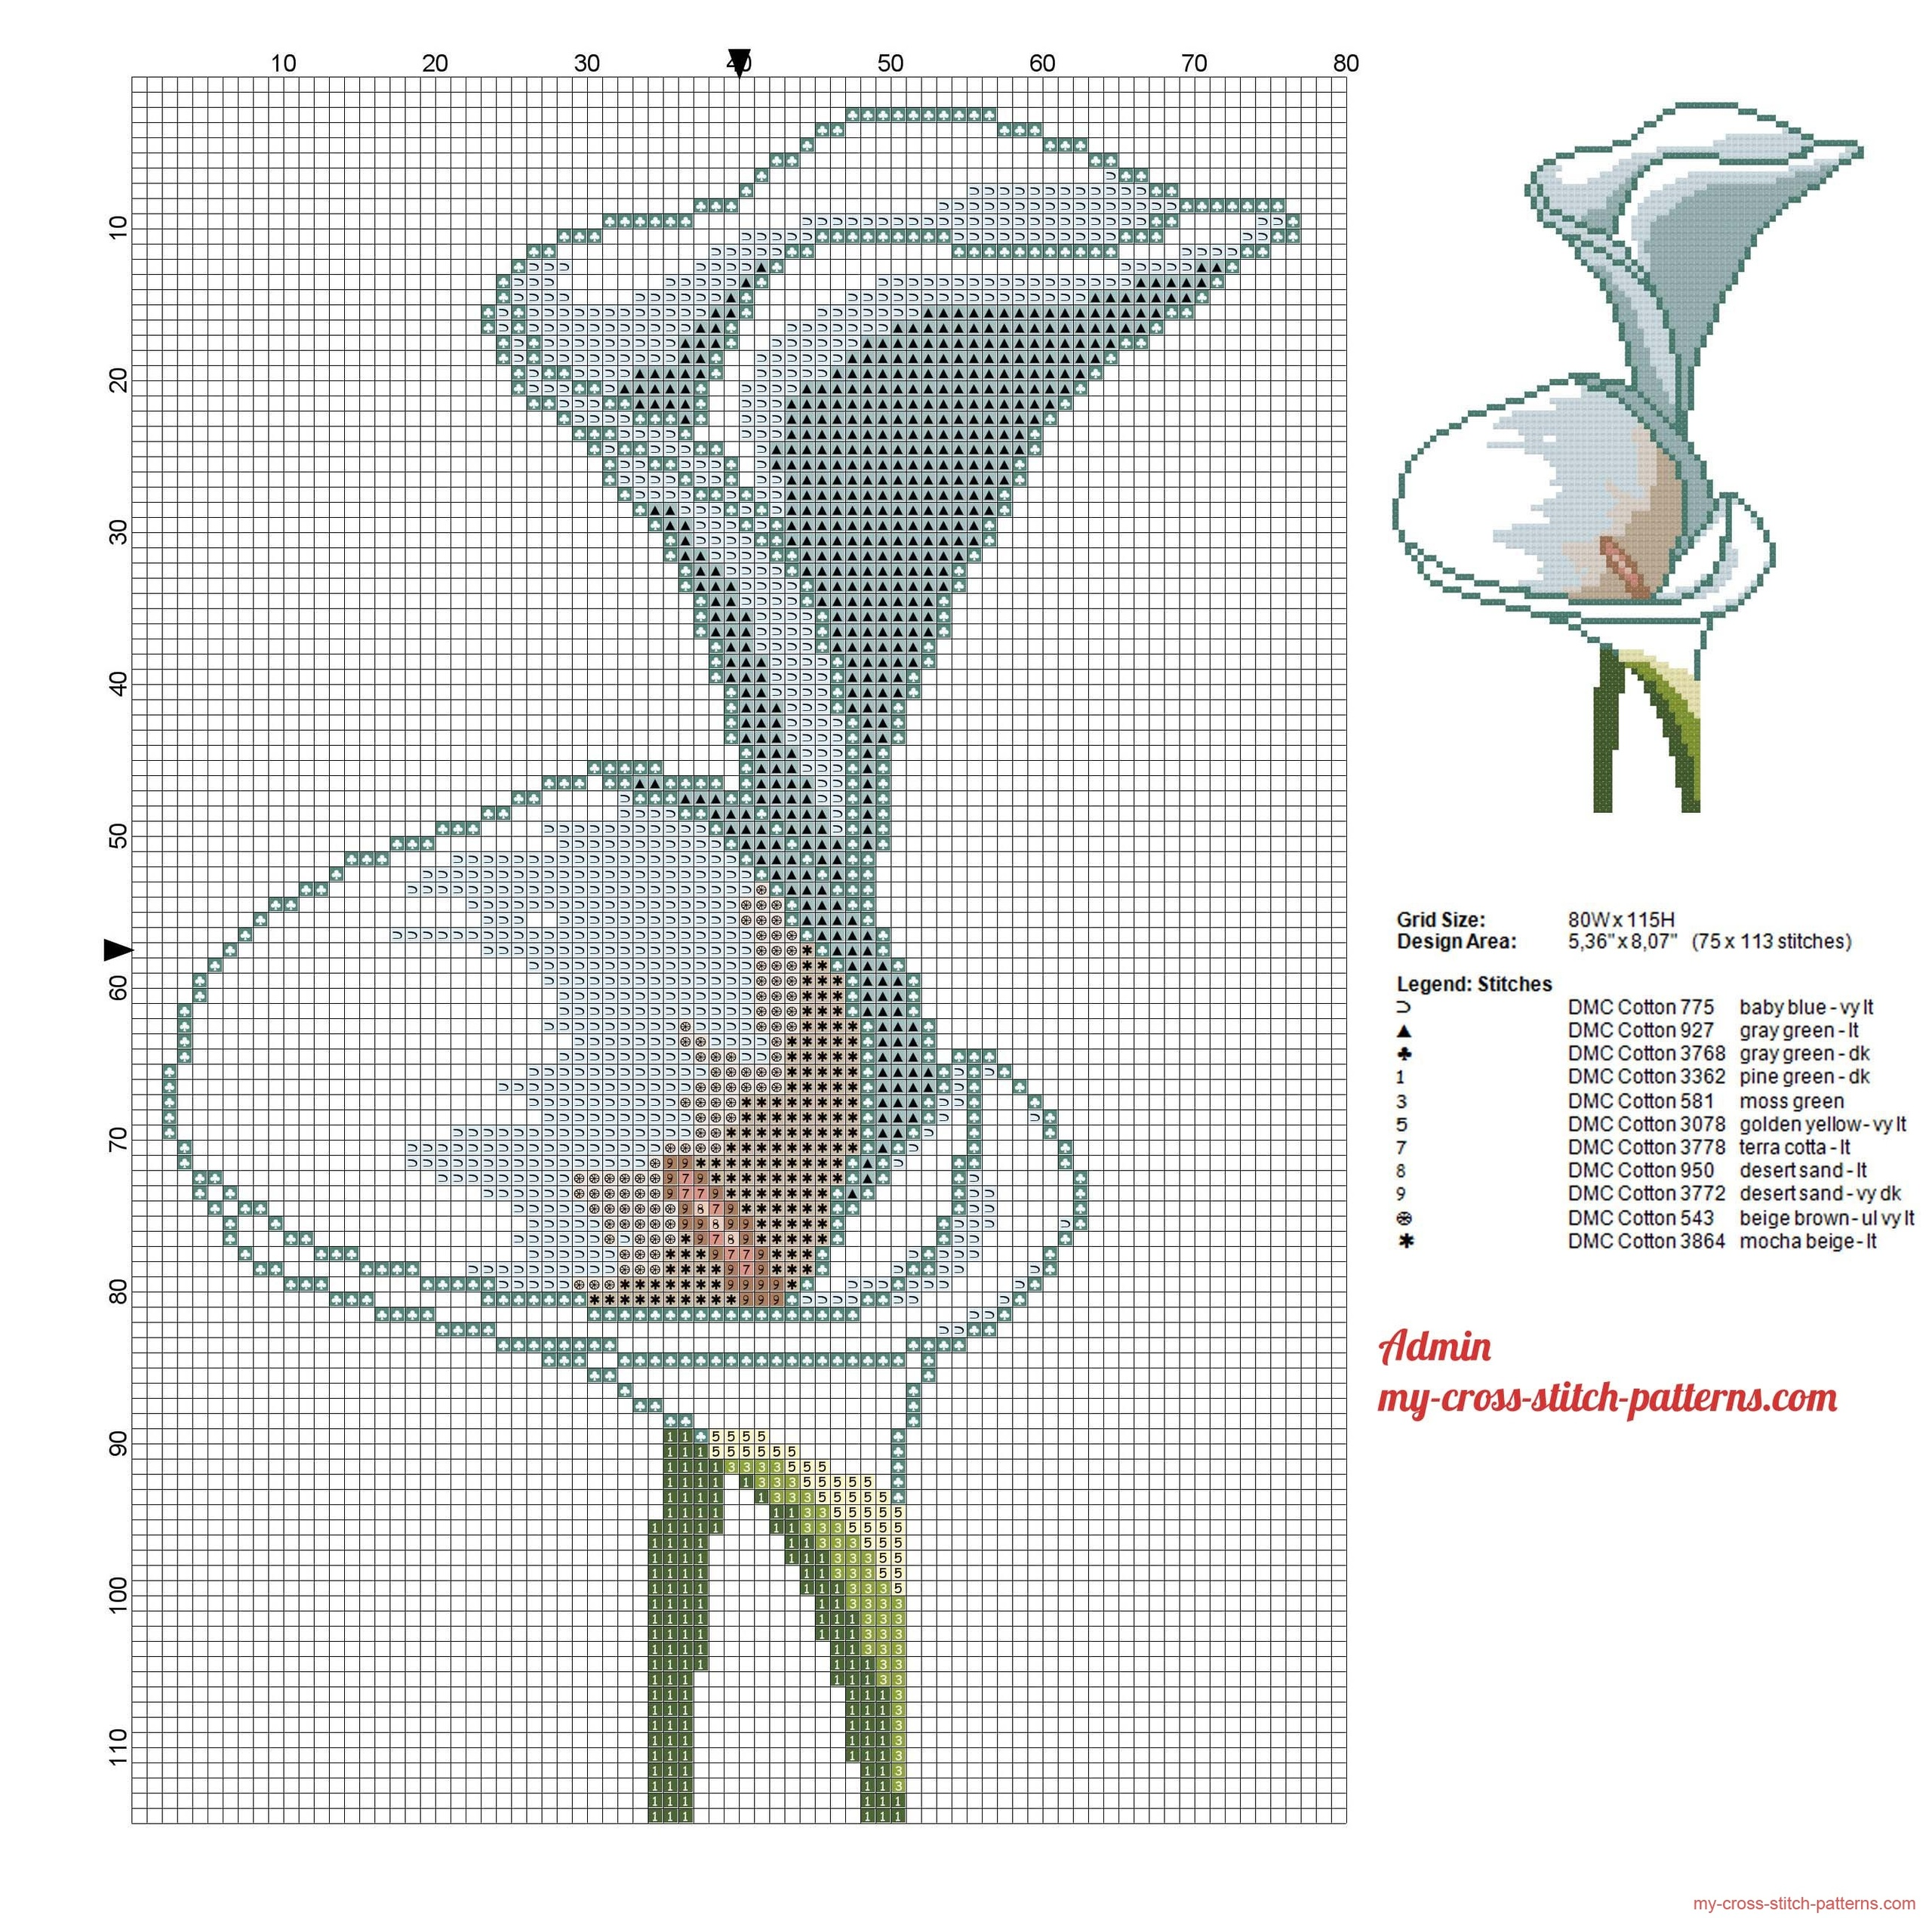 a_calla_lily_flower_cross_stitch_pattern